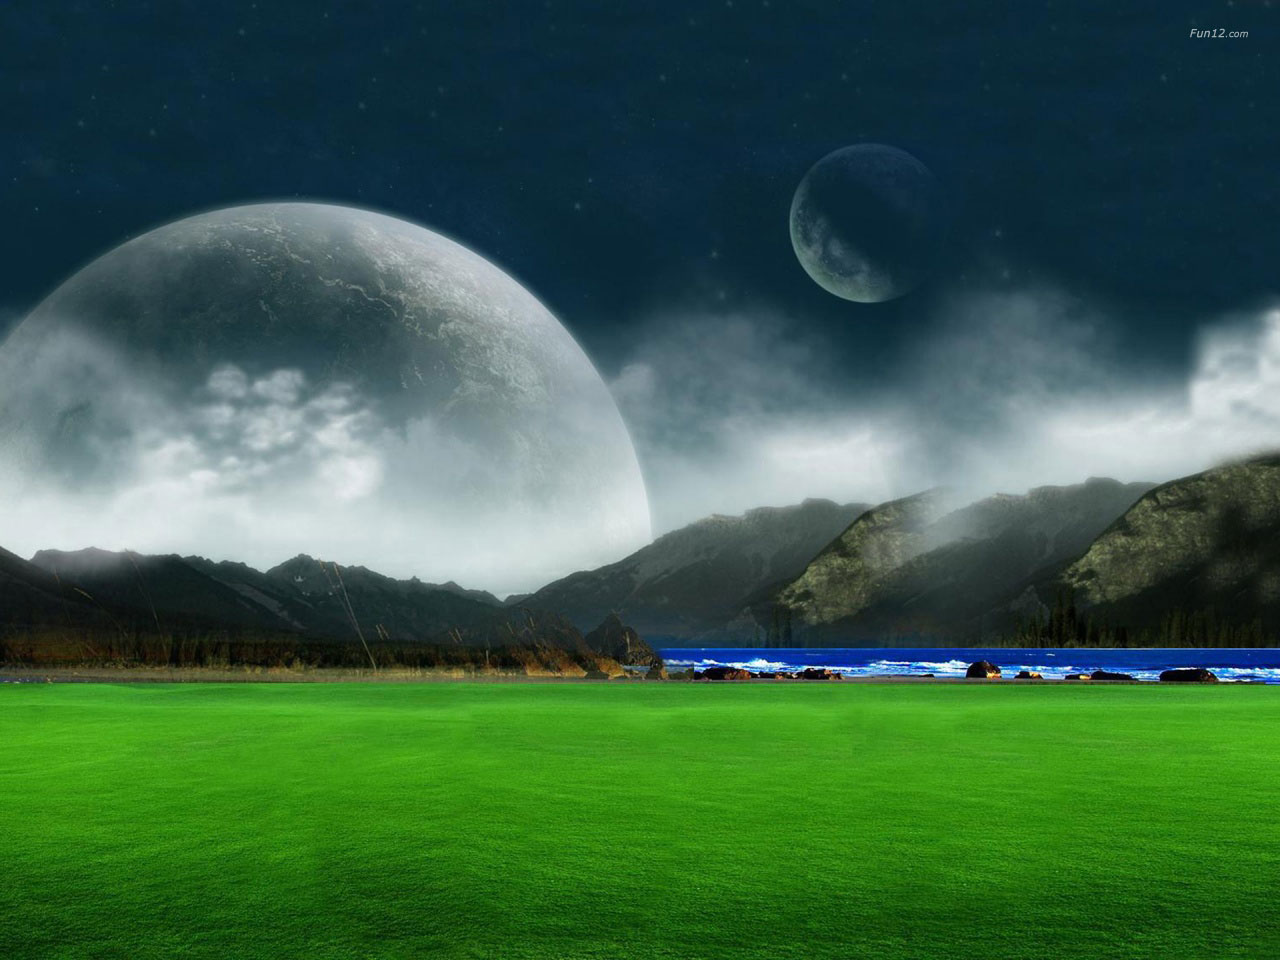 New 3d Wallpaper Landscape Desktop ~ Entertainment Site